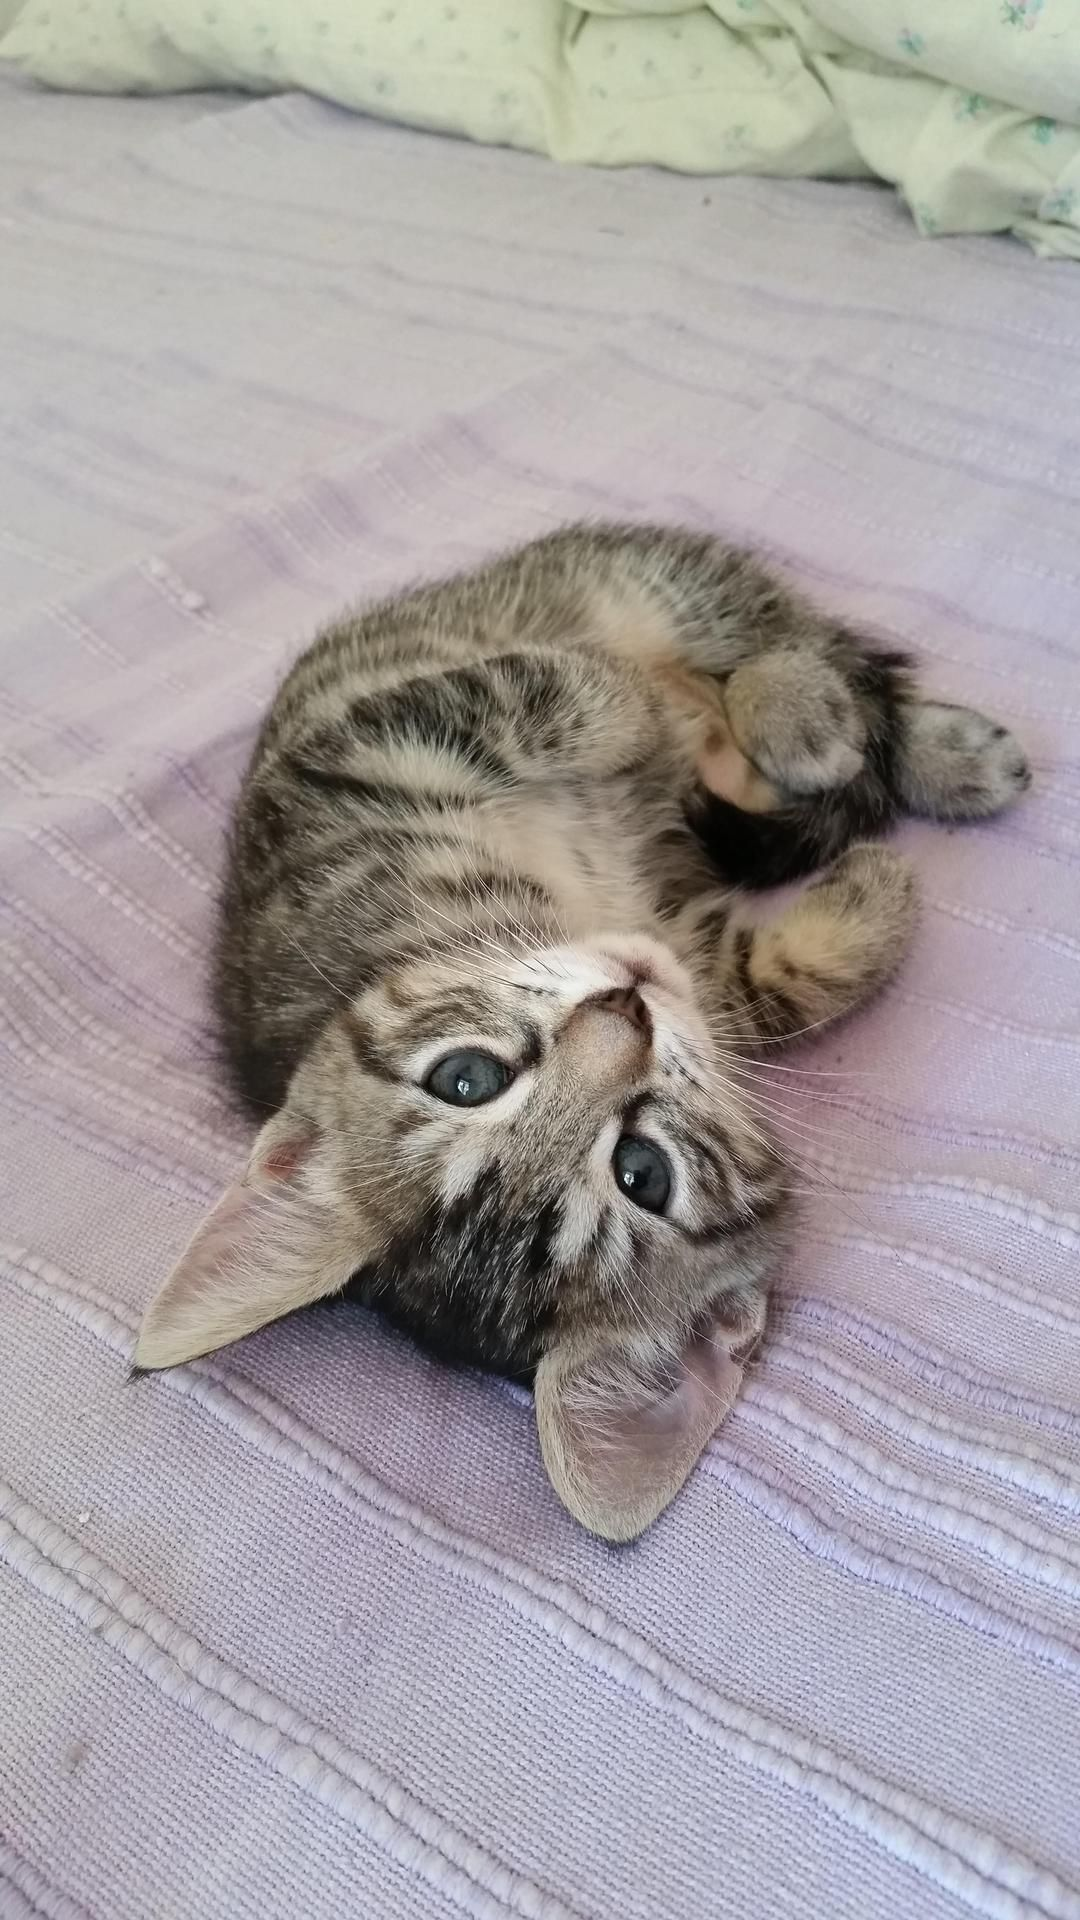 Laura Is 2 Months Old Now By Ceoolsson What You Think About Cute Animals Baby Animals Pictures Cuddly Animals